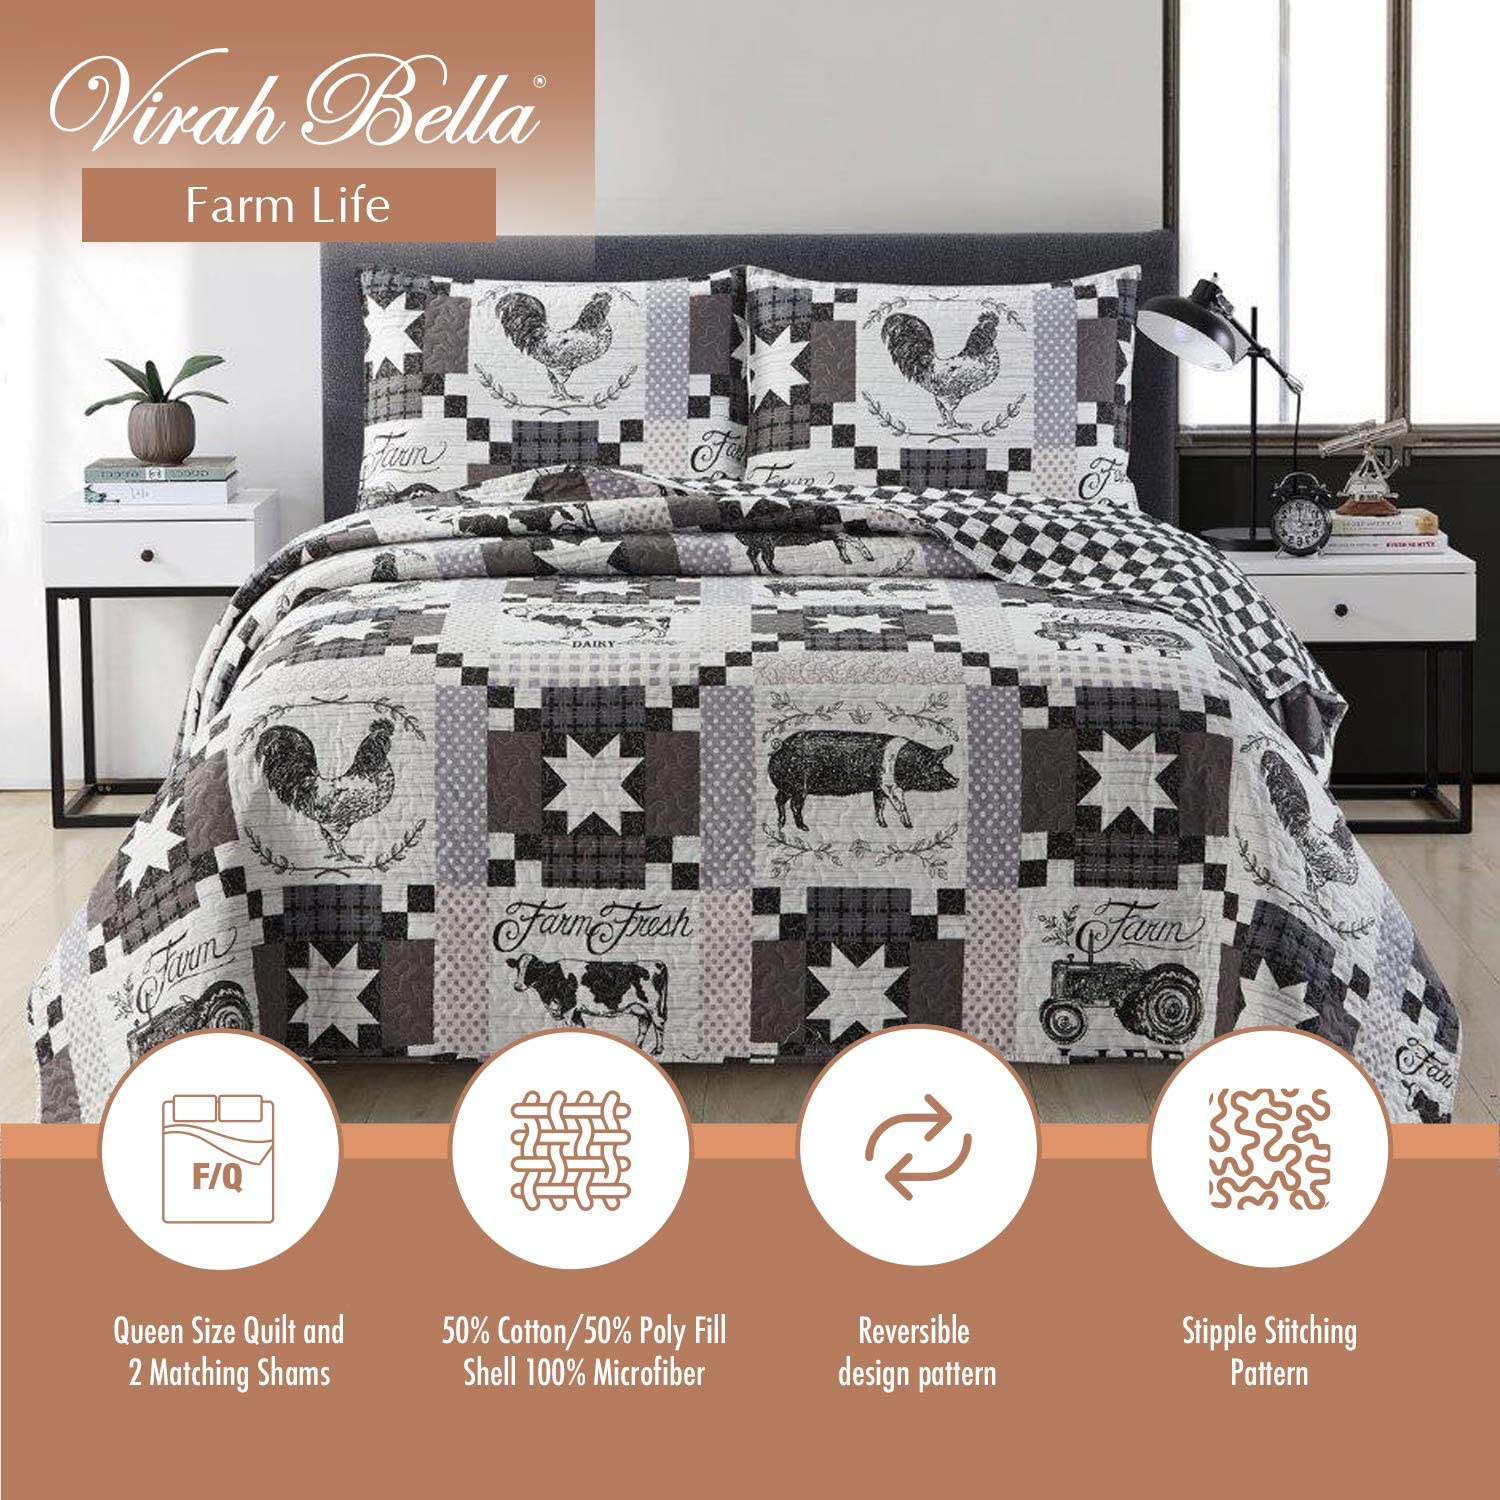 Virah Bella Farm Life Western Bedding Set - Full/Queen Quilt and Standard Shams with Farm Animal and Patchwork Pattern